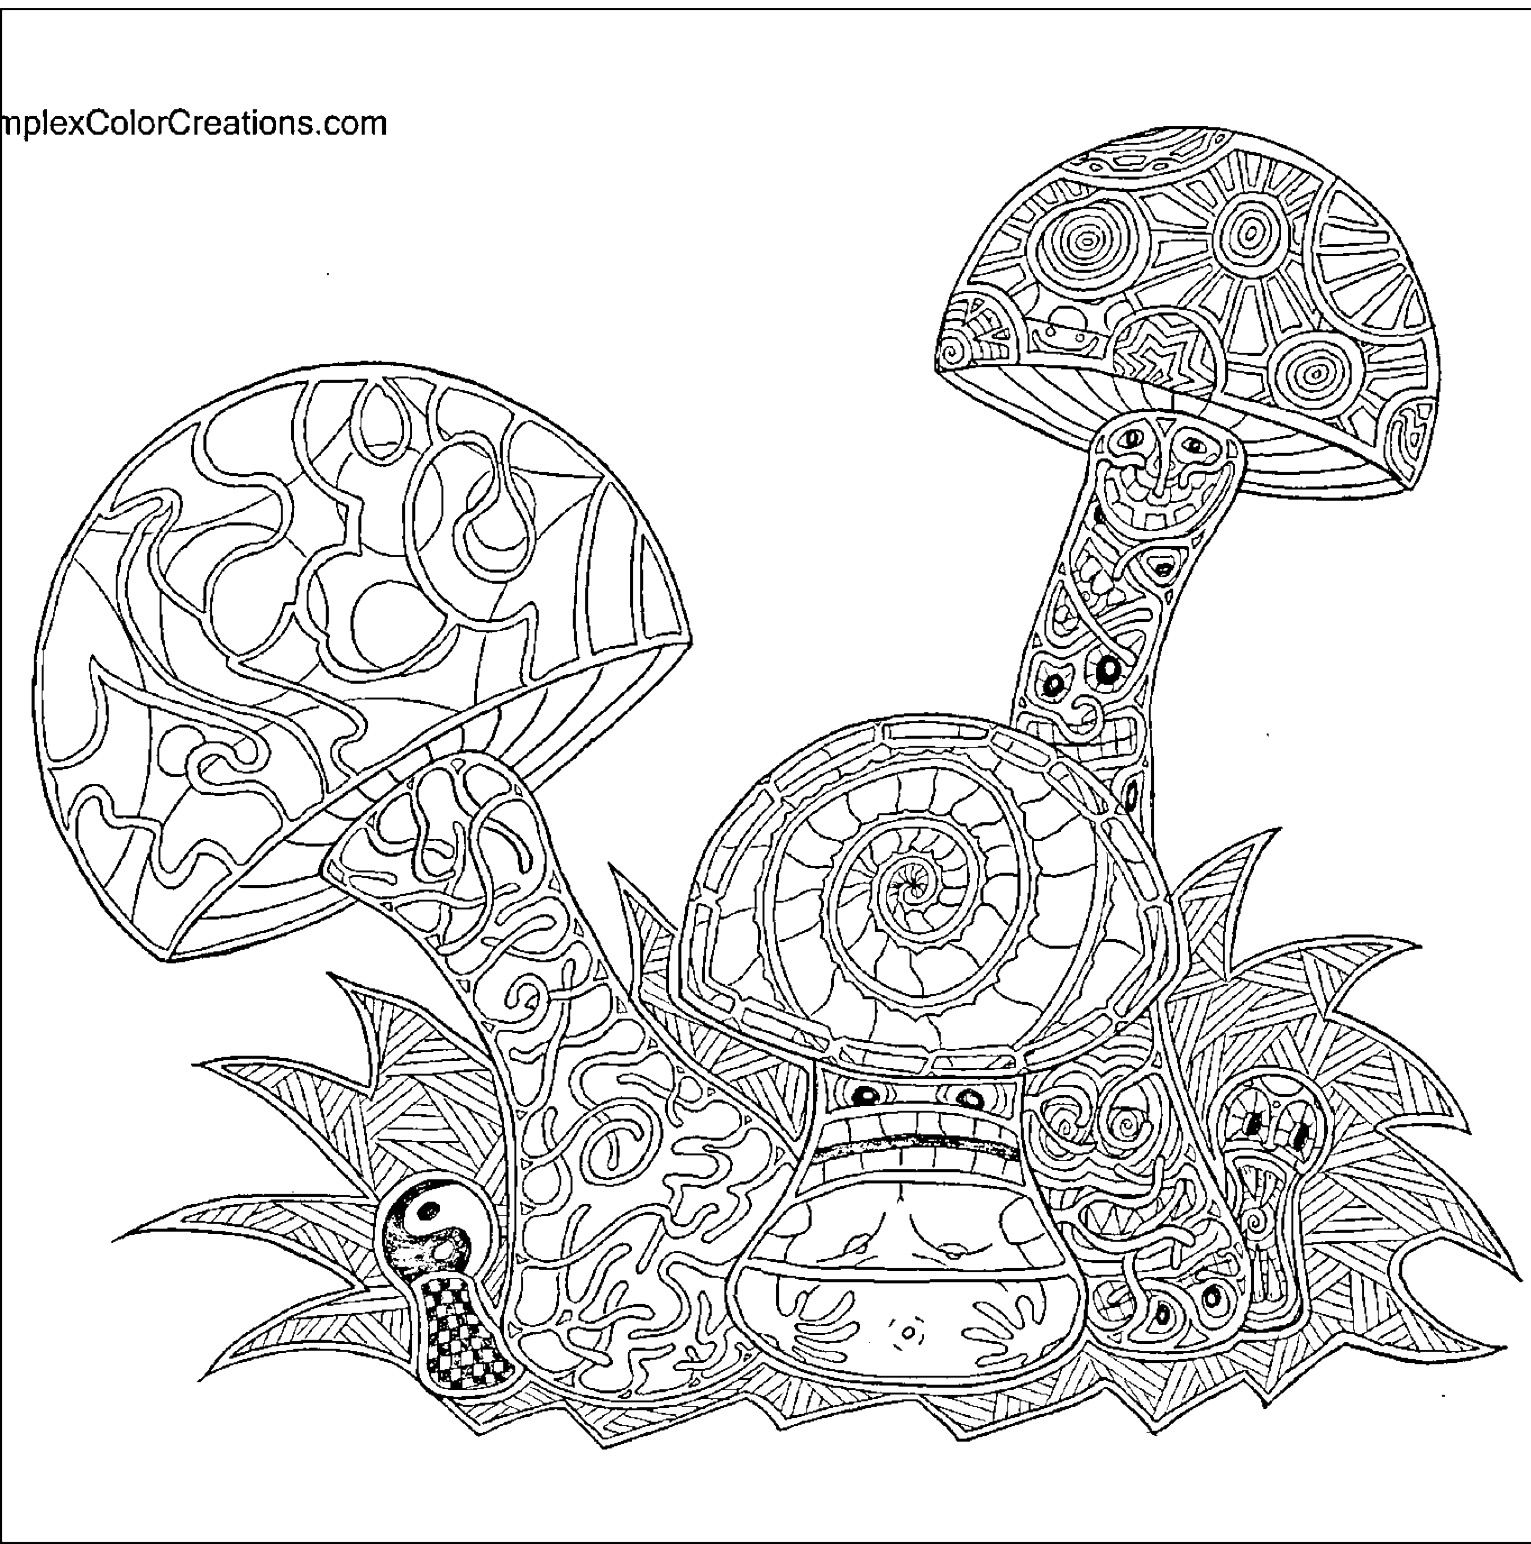 hard trippy coloring page mushroom coloring page - Trippy Coloring Pages